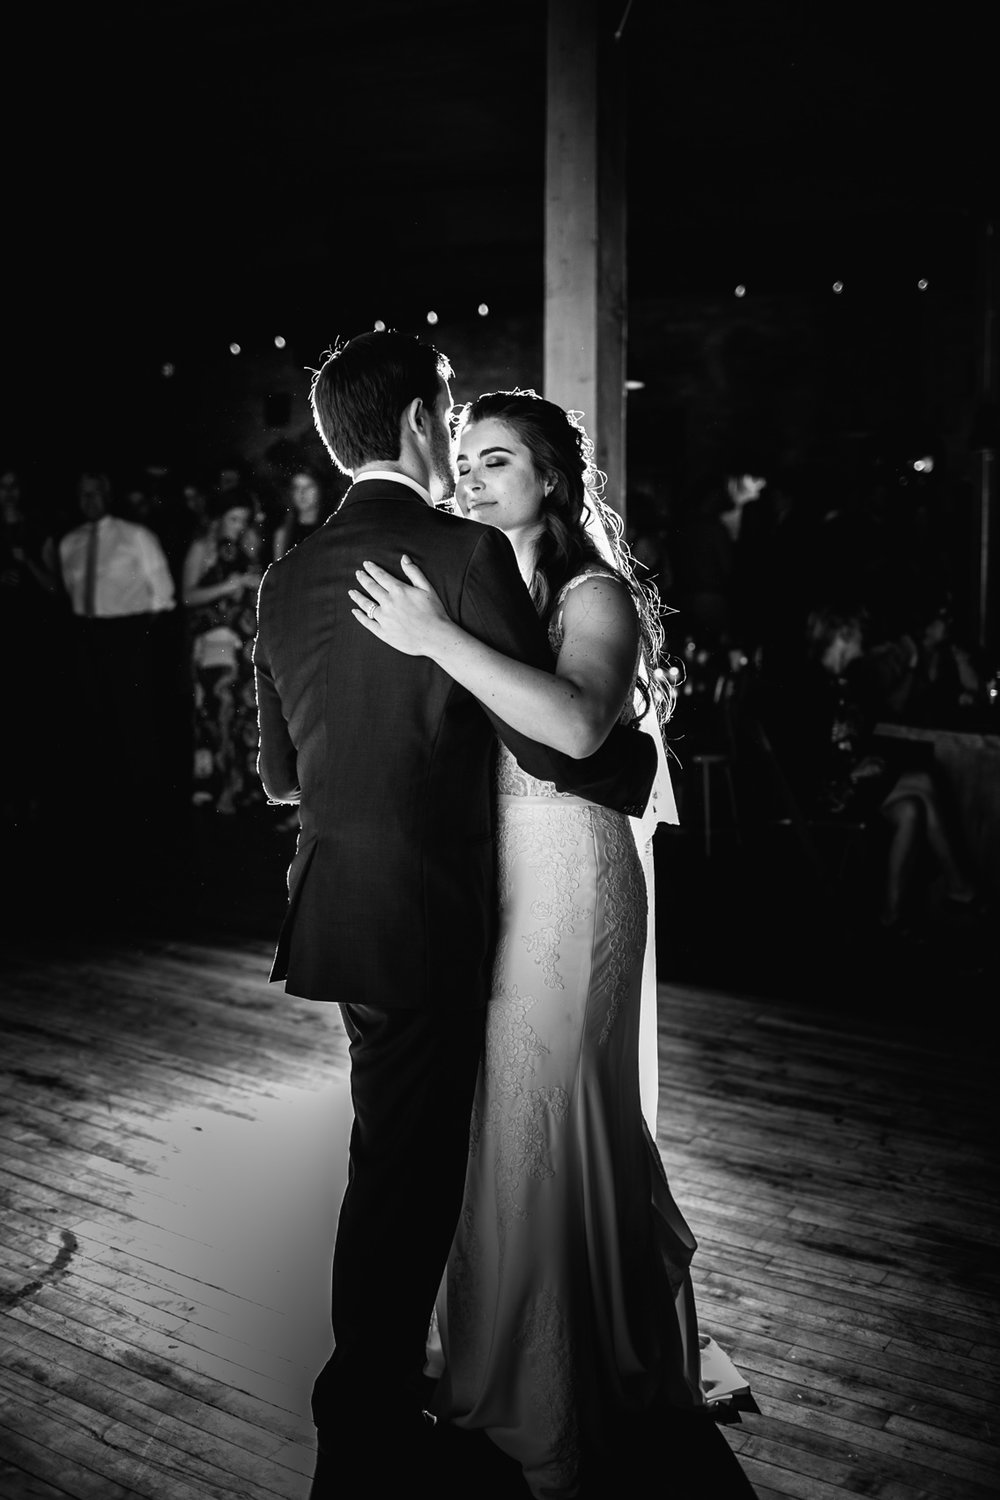 madison-wedding-photographer-18.jpg